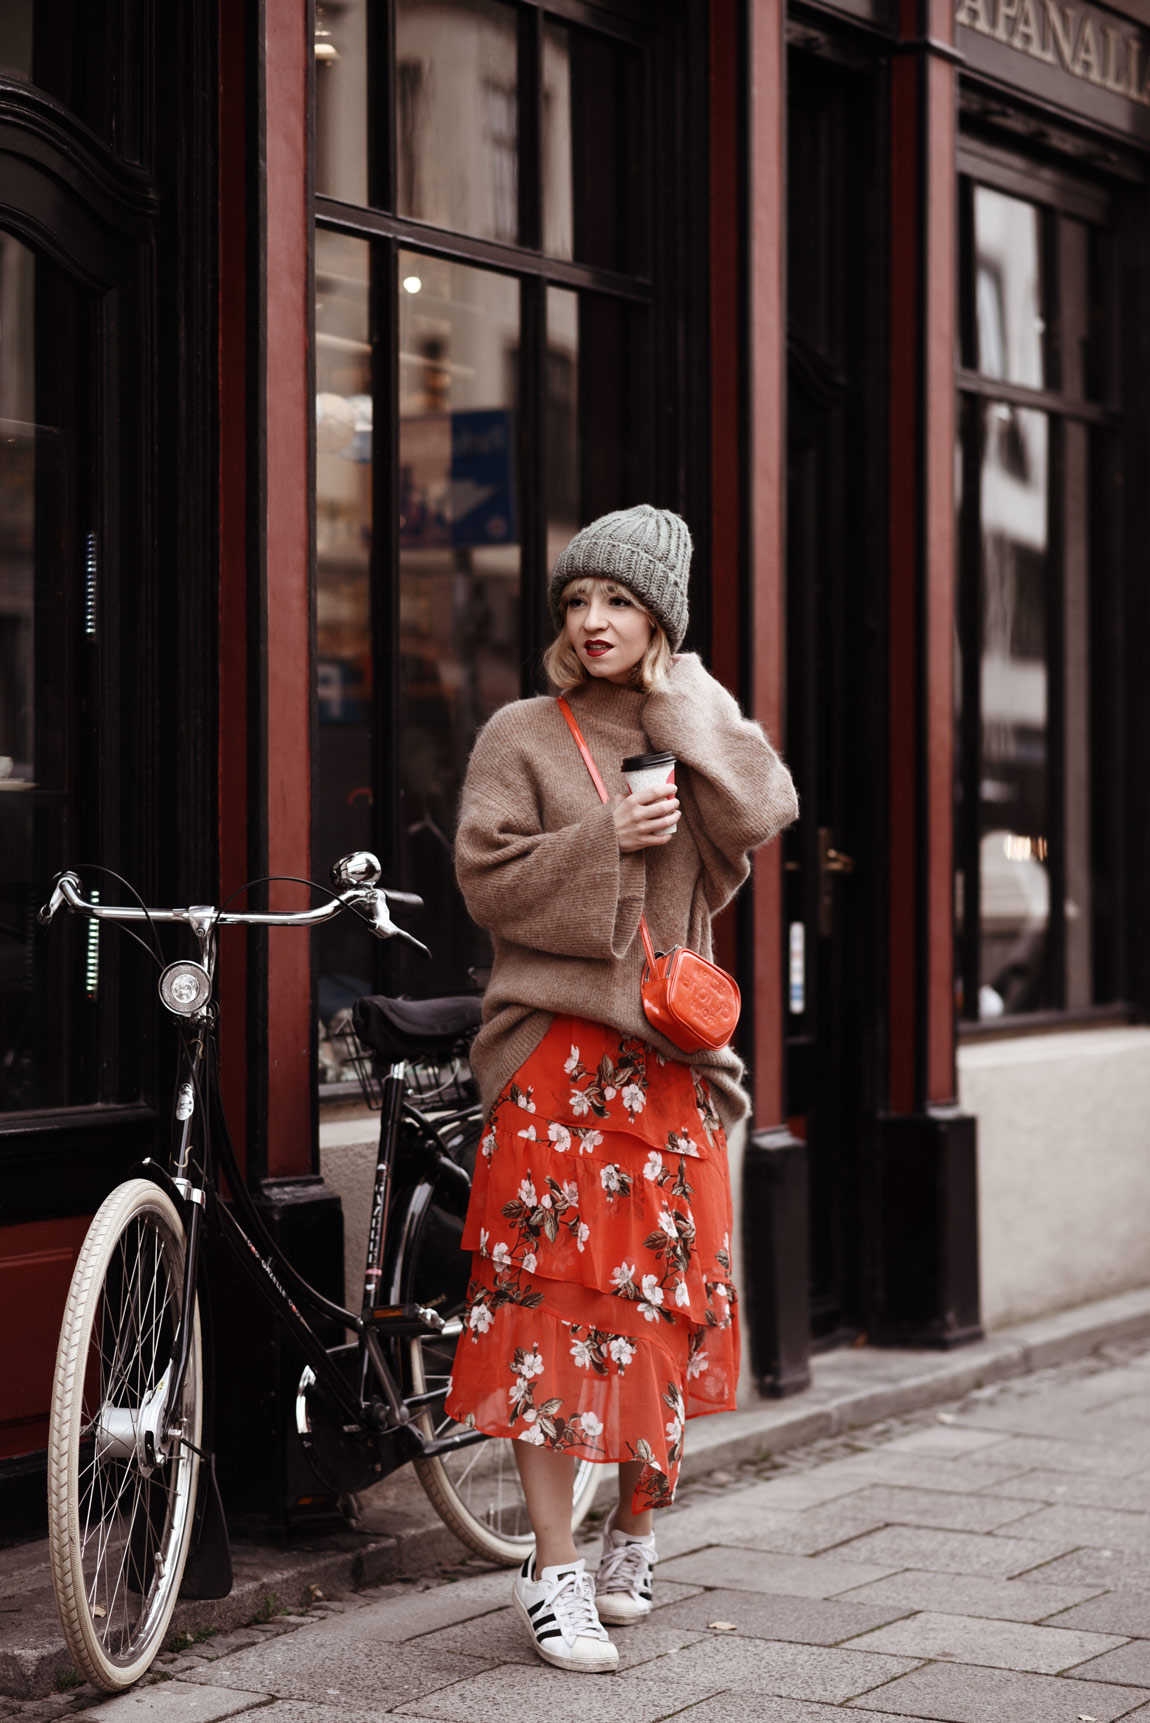 blumen, chiffon, rock, missselfridge, london, muenchen, fashionblog, modeblog, outfit, streetstyle, pullover, hm, trend, inspiration, ootd, strick